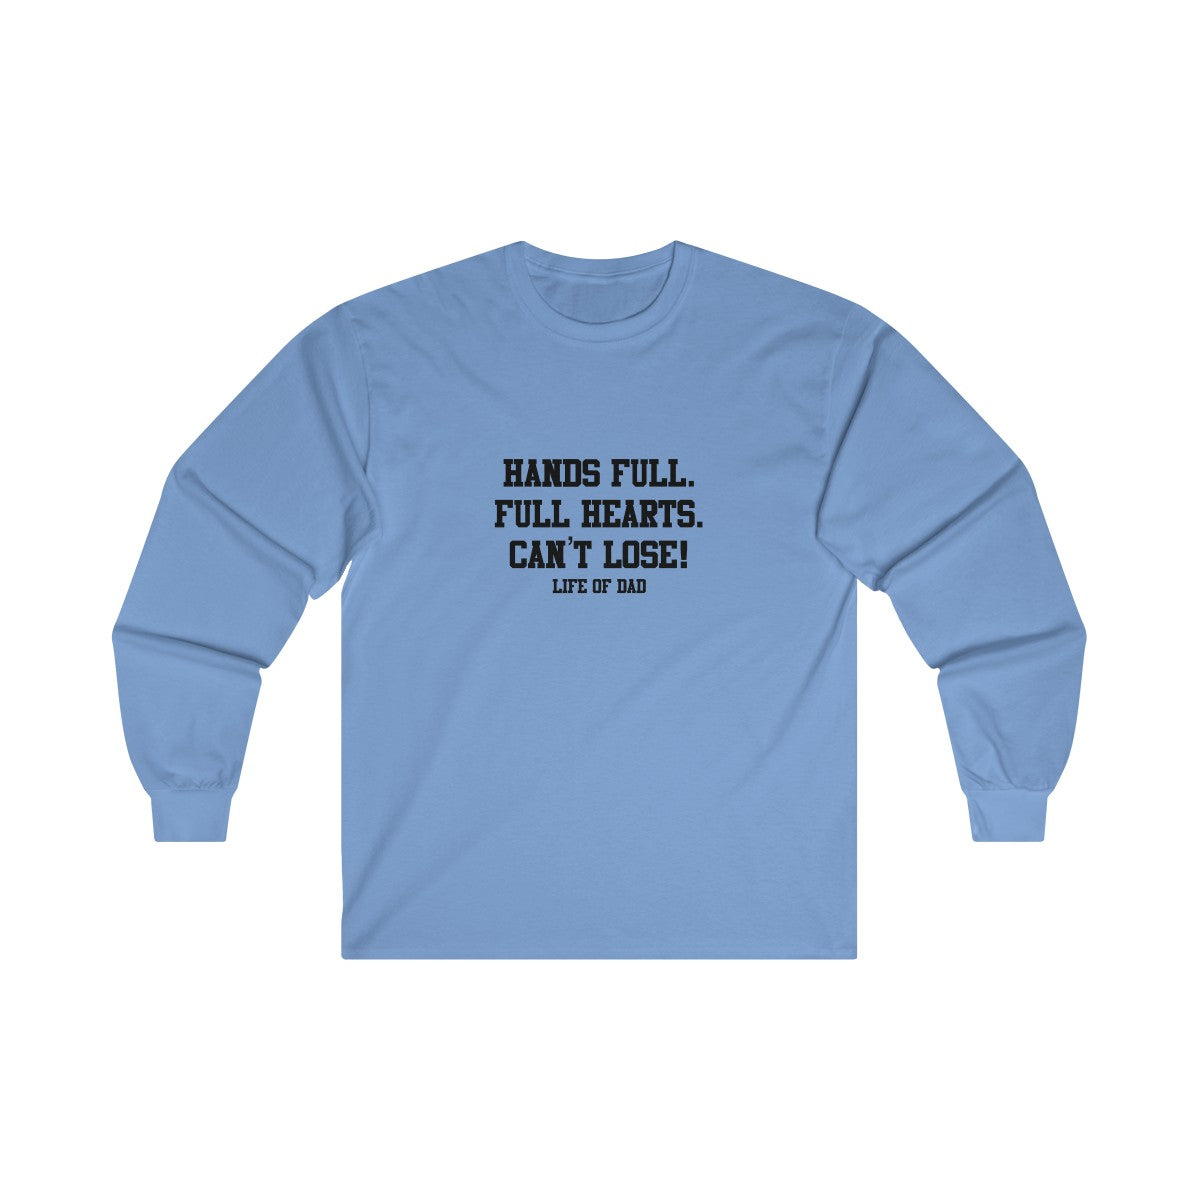 Life of Dad - Hands Full. Full Hearts. Can't Lose! Long Sleeve Shirt